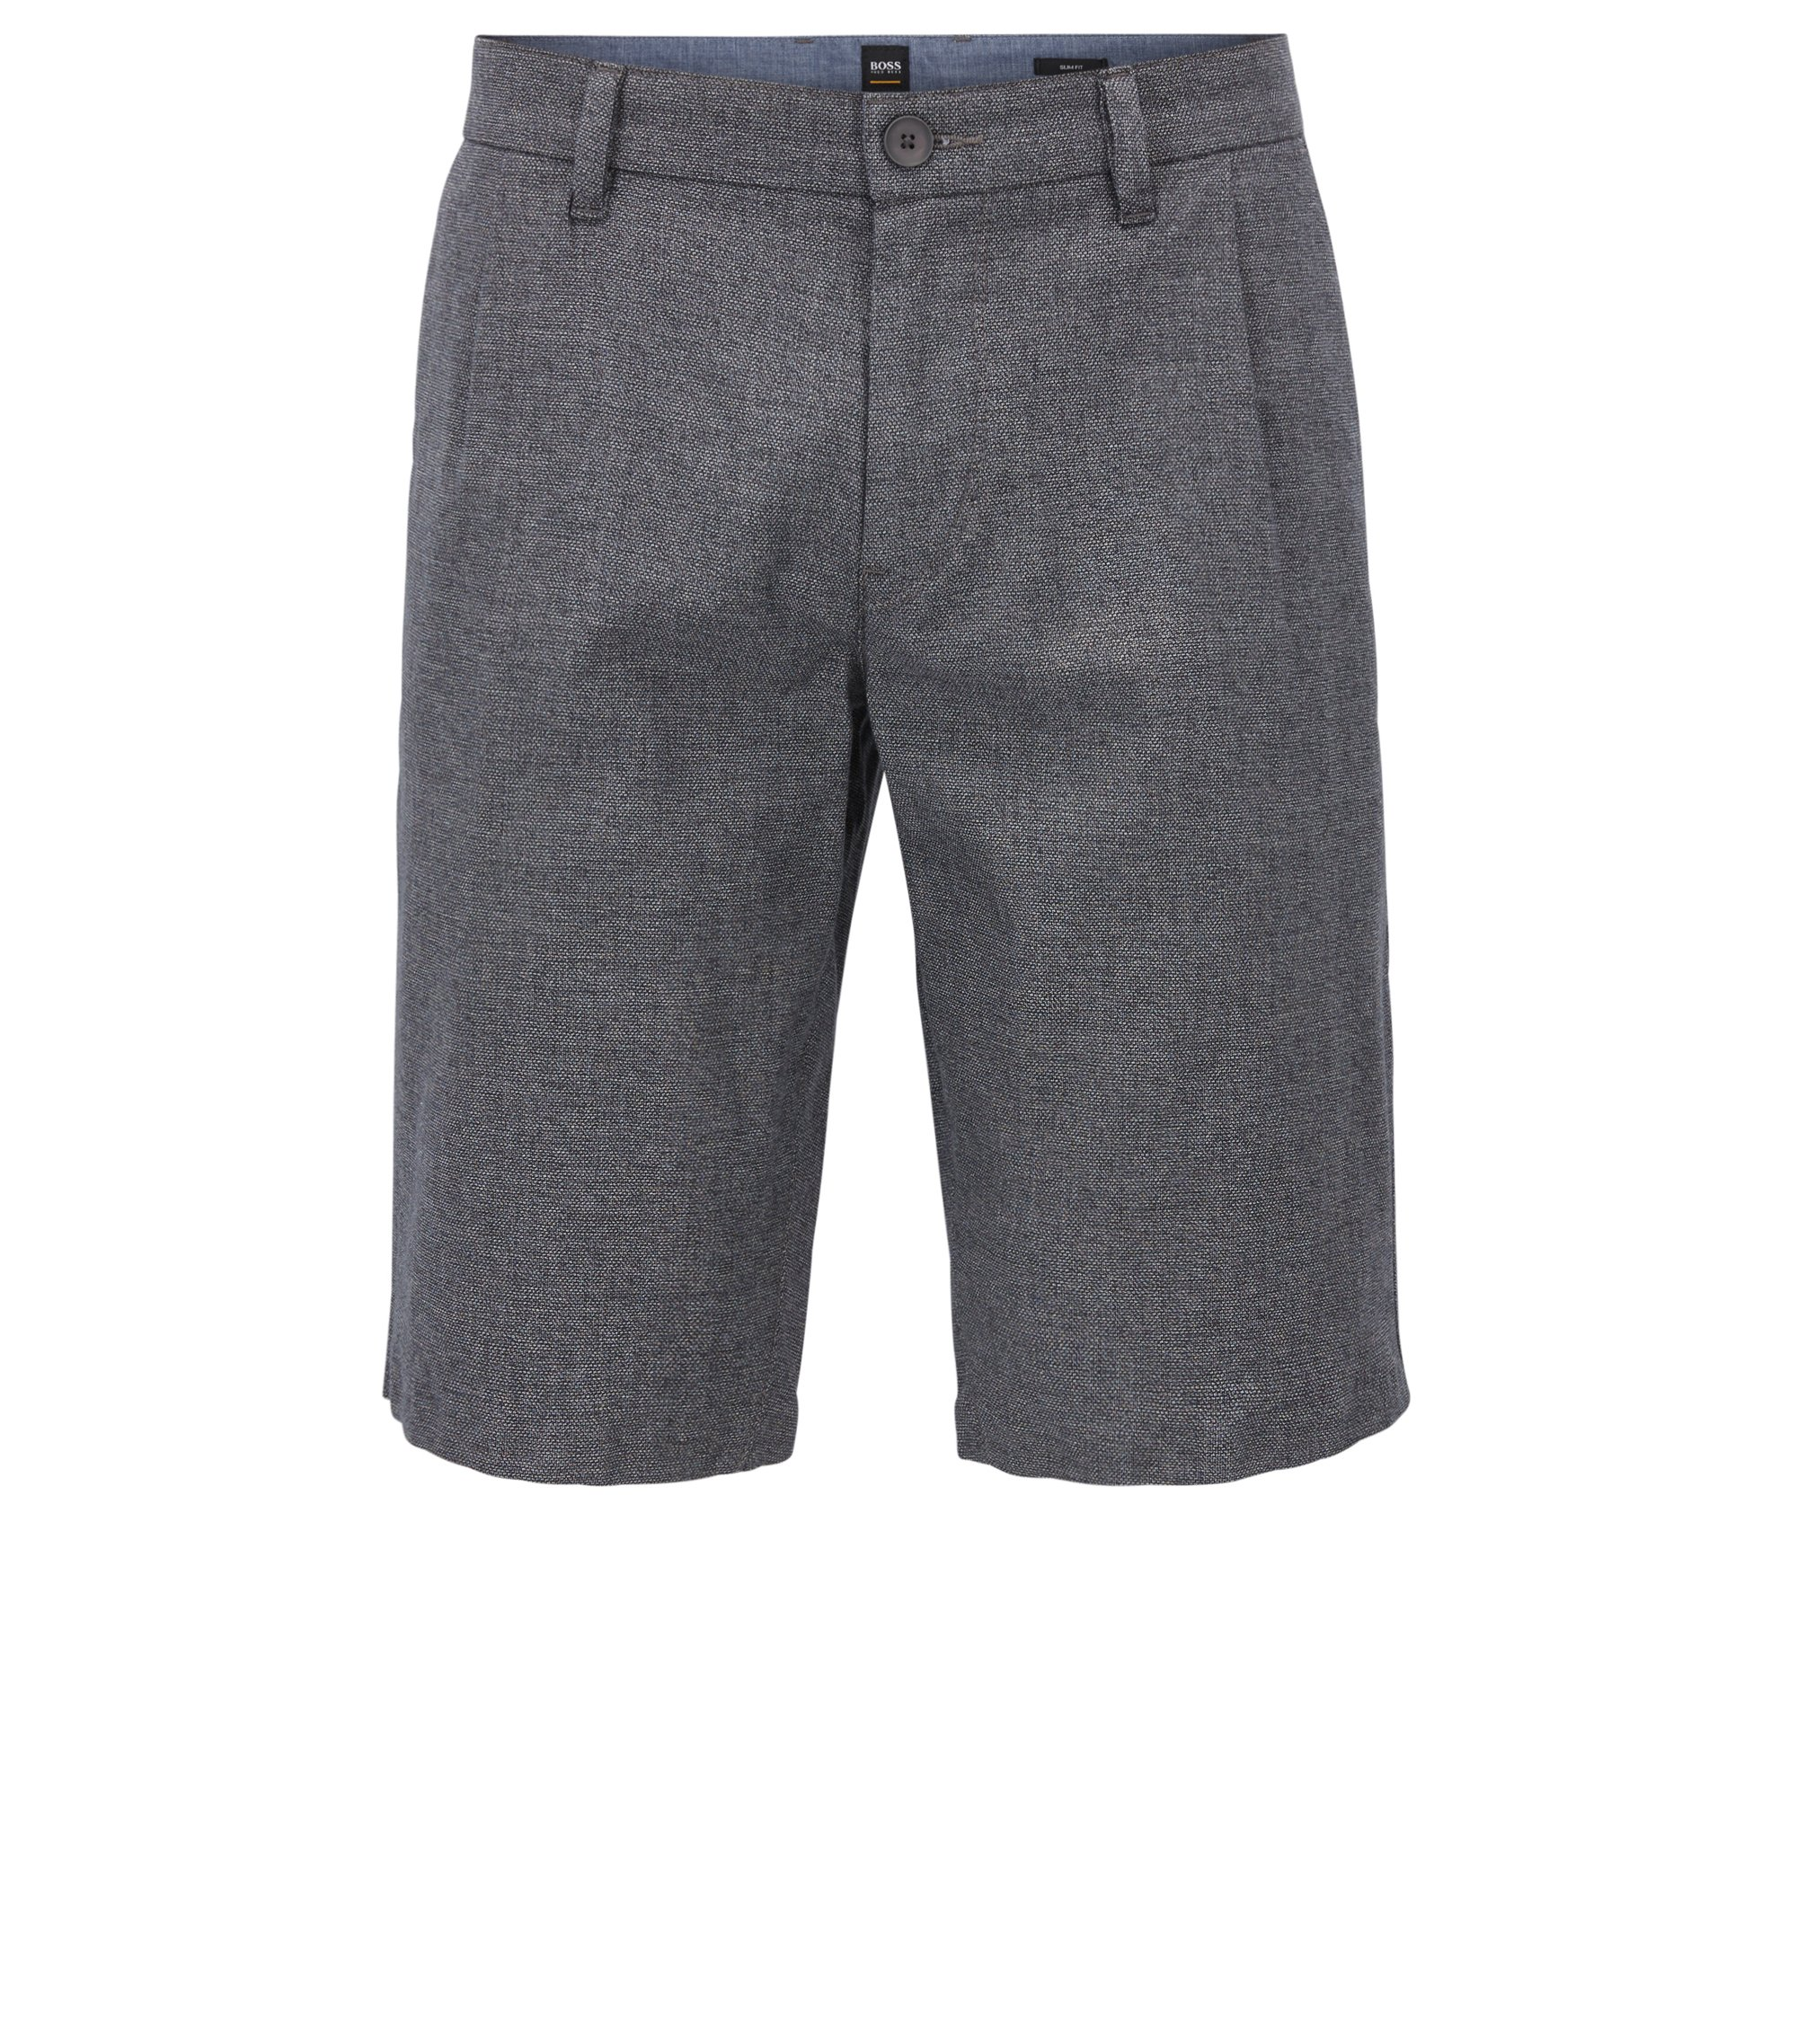 Slim-fit short in tweekleurig, gemêleerd stretchkatoen, Donkerblauw